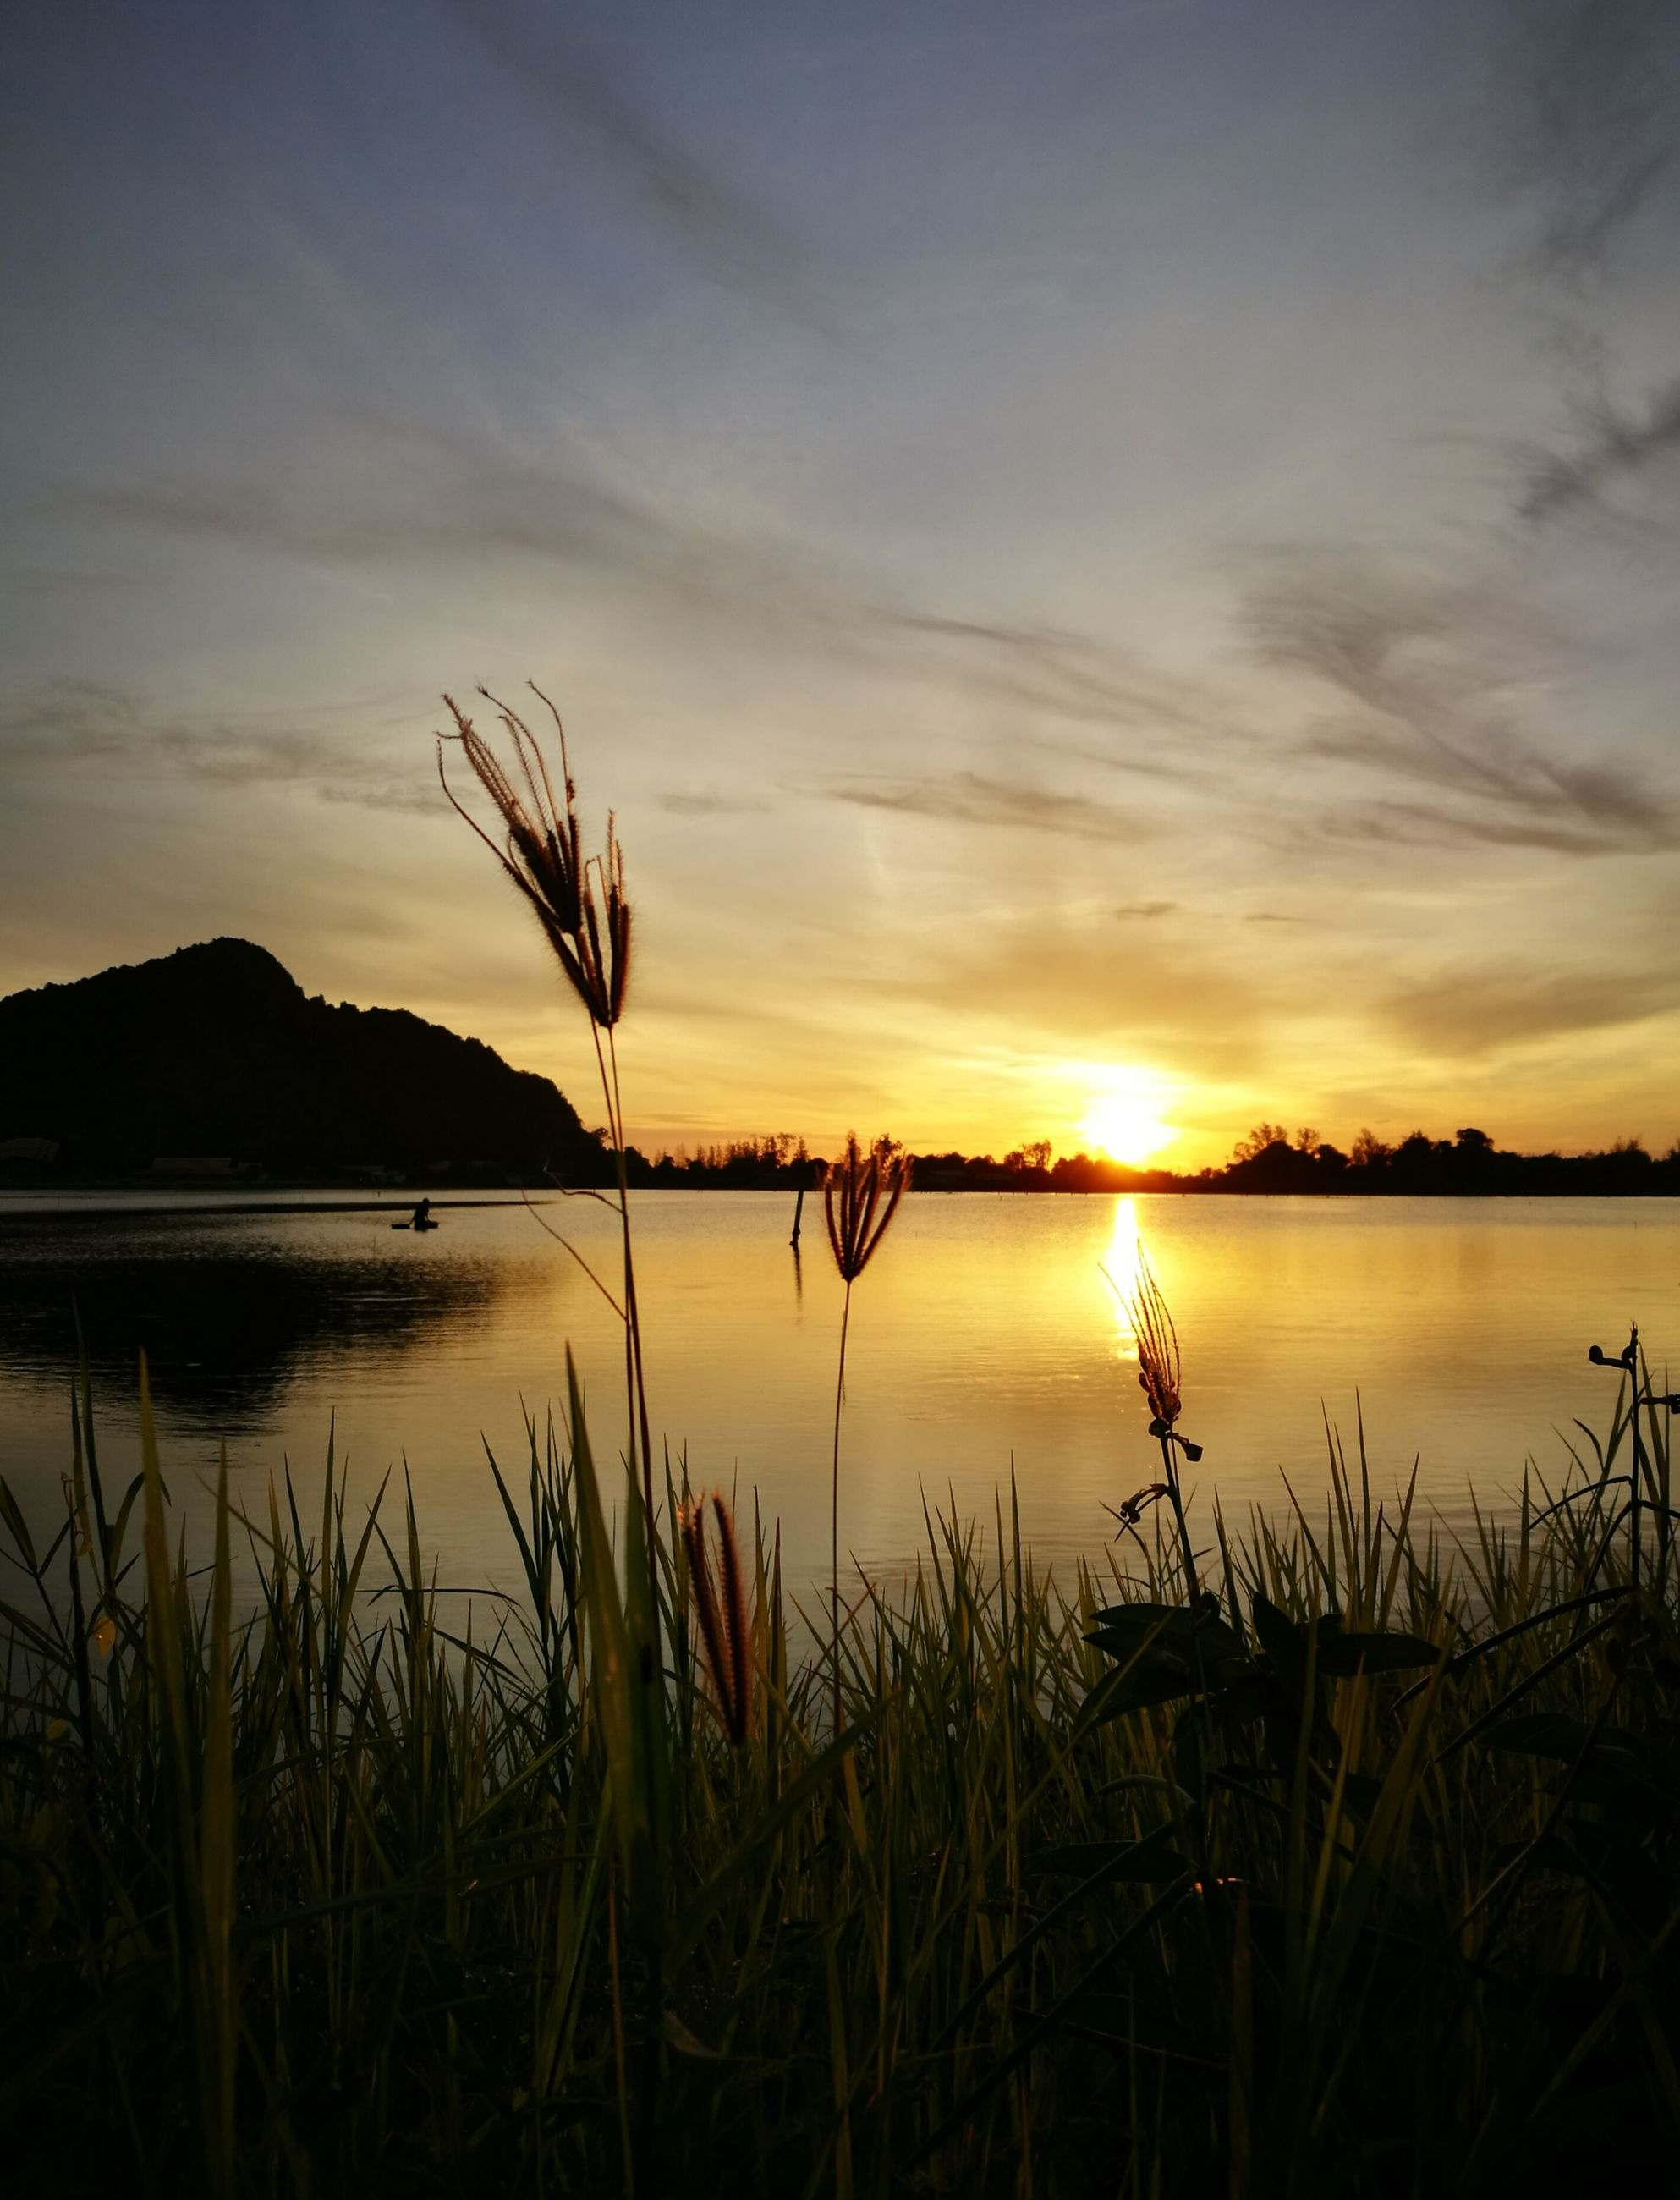 sunset, water, tranquil scene, lake, tranquility, sky, scenics, beauty in nature, reflection, sun, plant, nature, grass, idyllic, lakeshore, cloud - sky, cloud, orange color, growth, outdoors, calm, no people, non urban scene, non-urban scene, mountain, majestic, landscape, remote